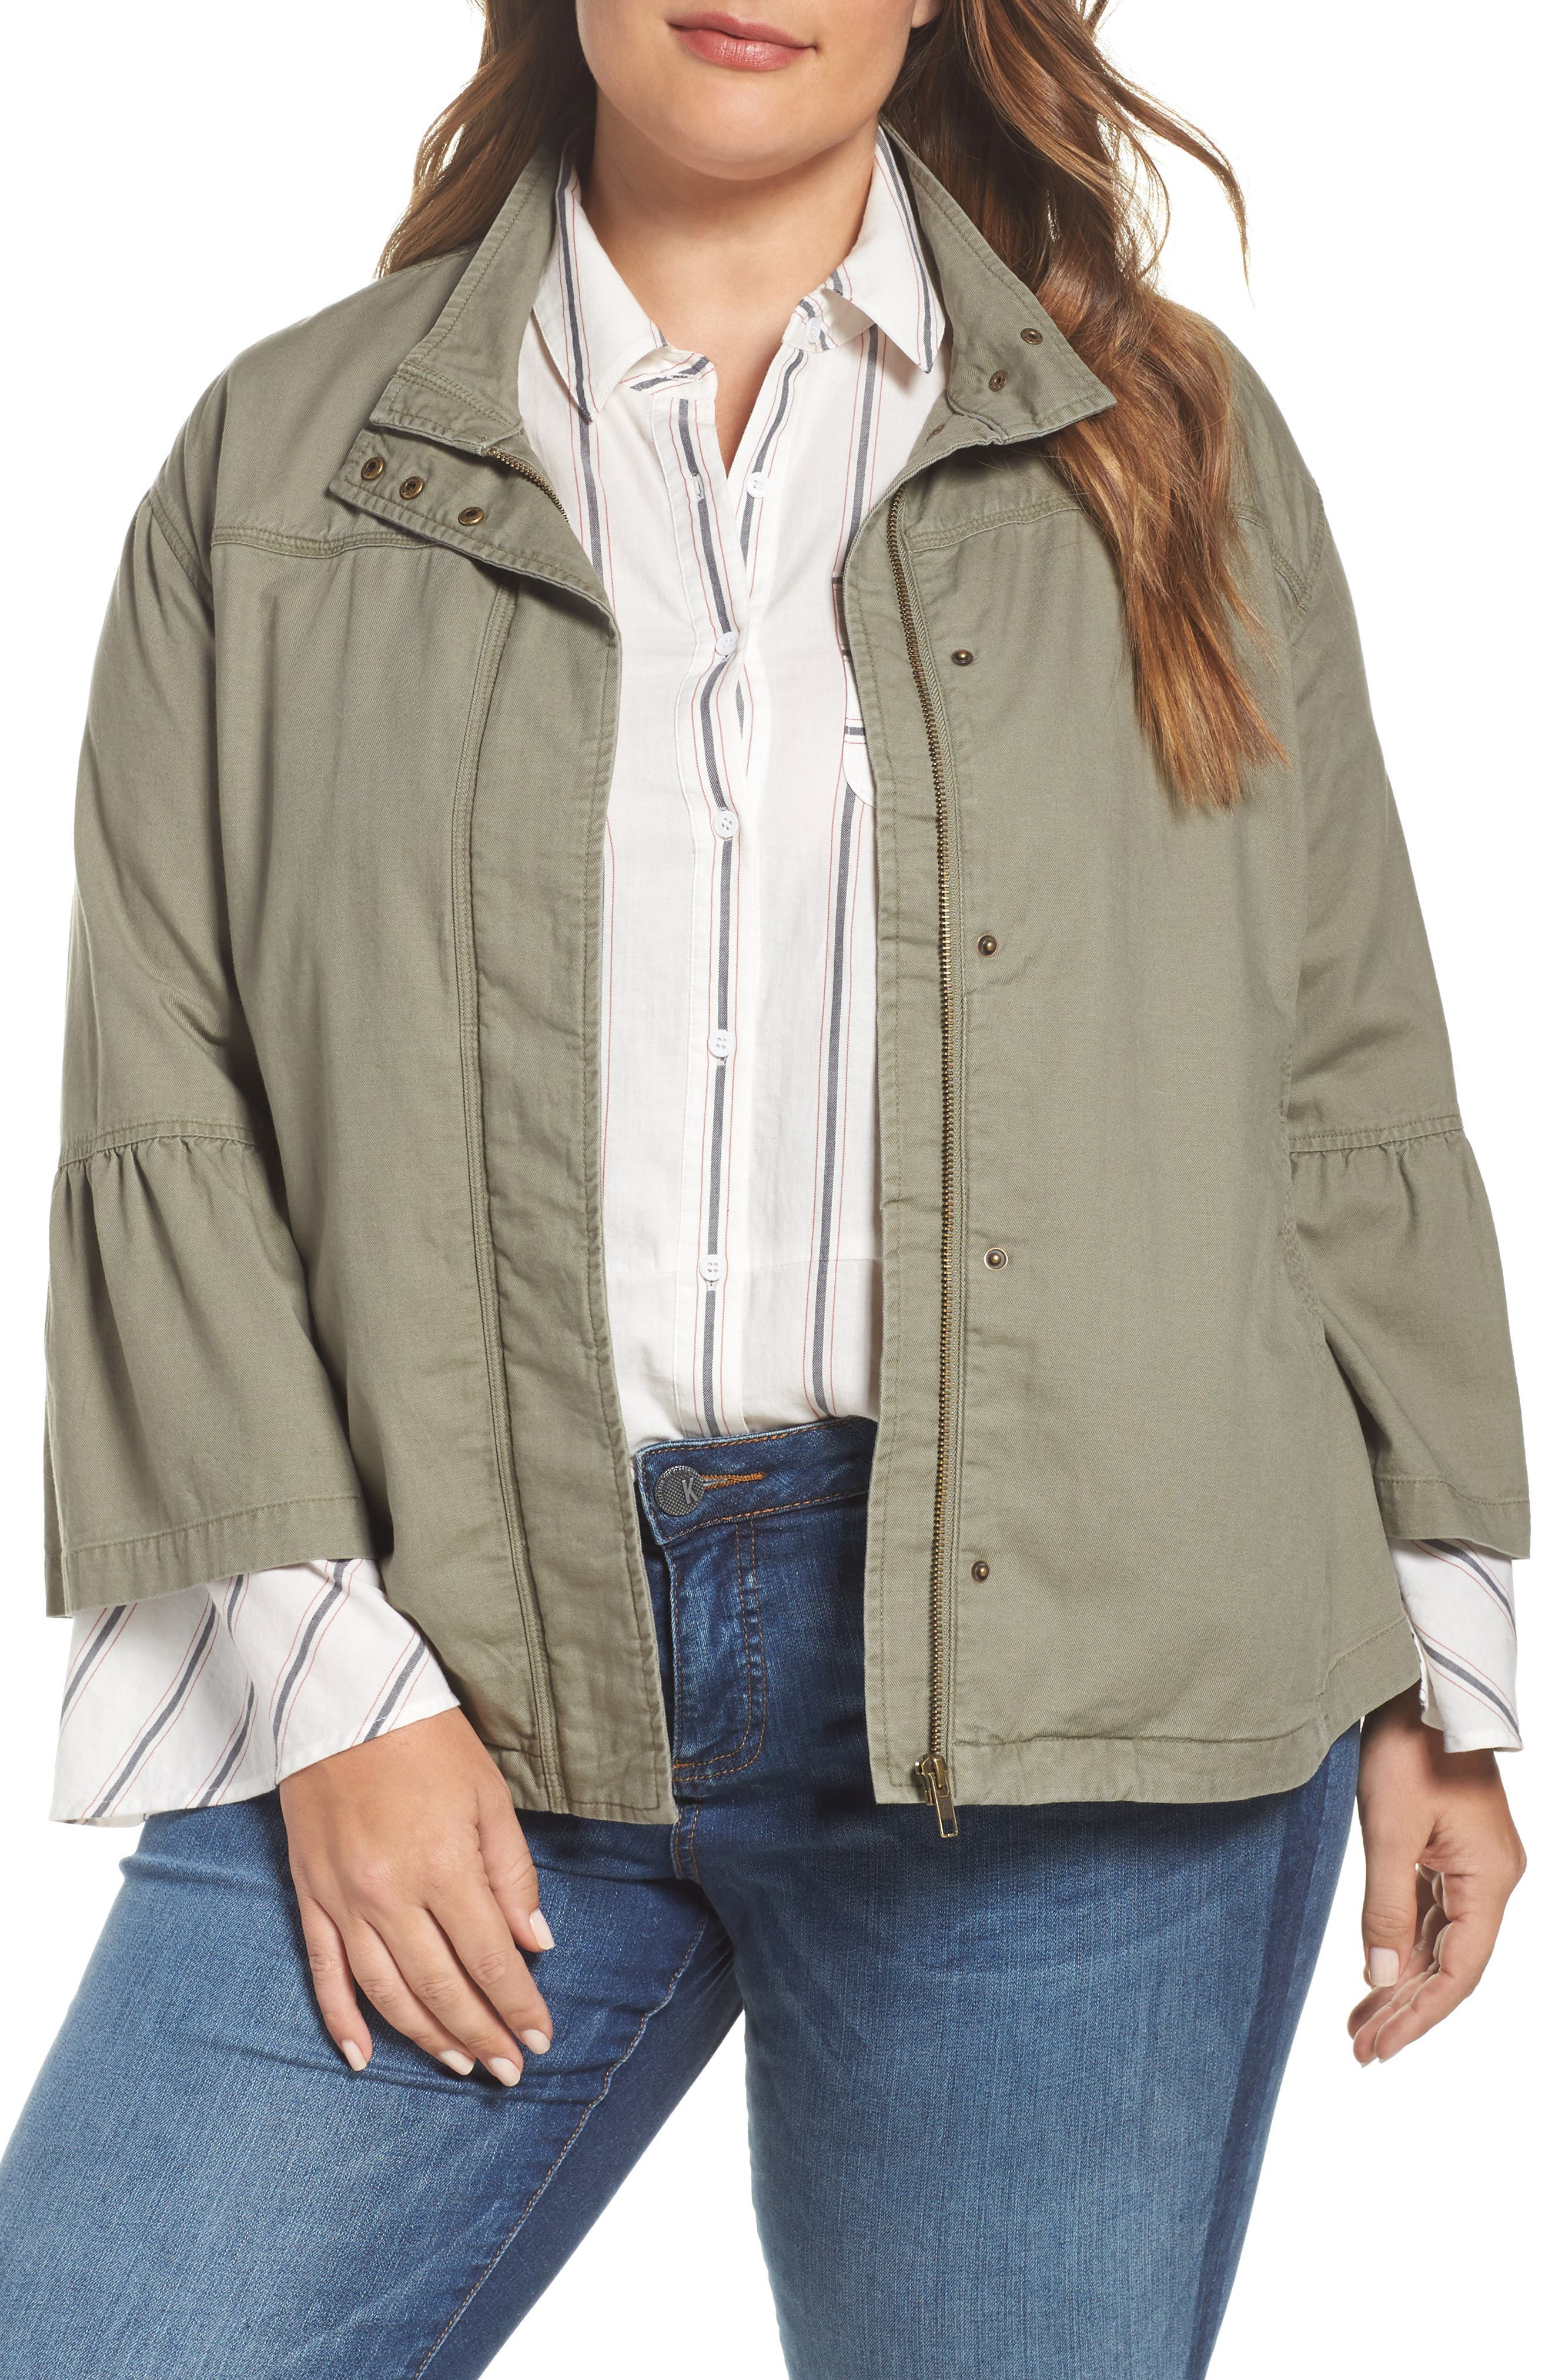 Bell Sleeve Utility Jacket,                             Main thumbnail 1, color,                             315